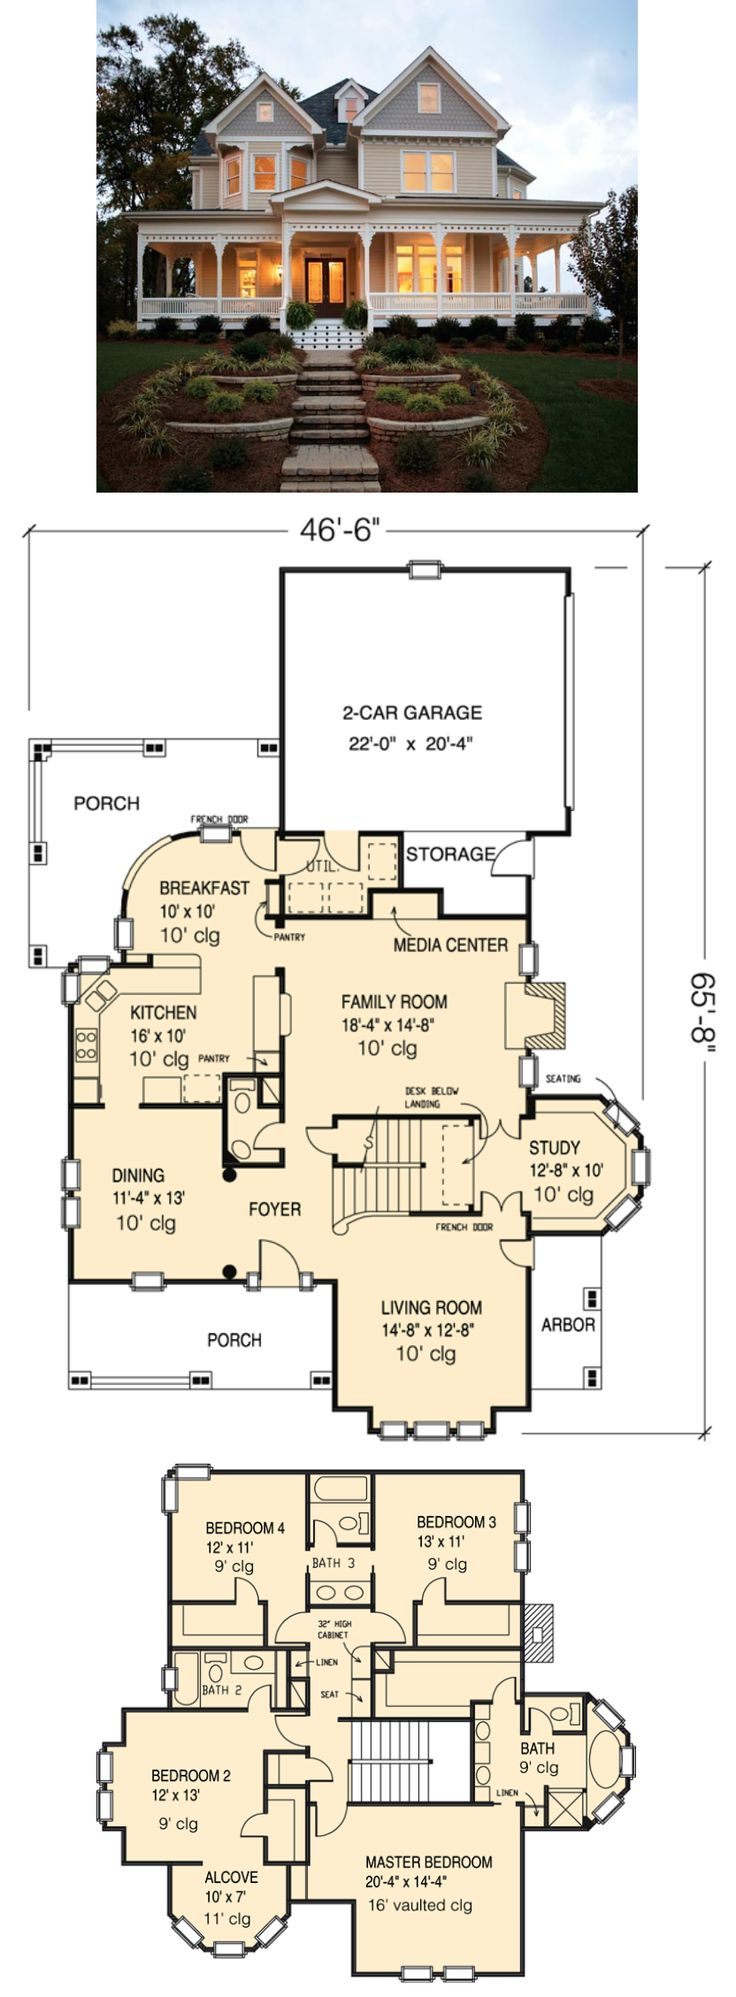 Best 25+ Basement floor plans ideas on Pinterest ...